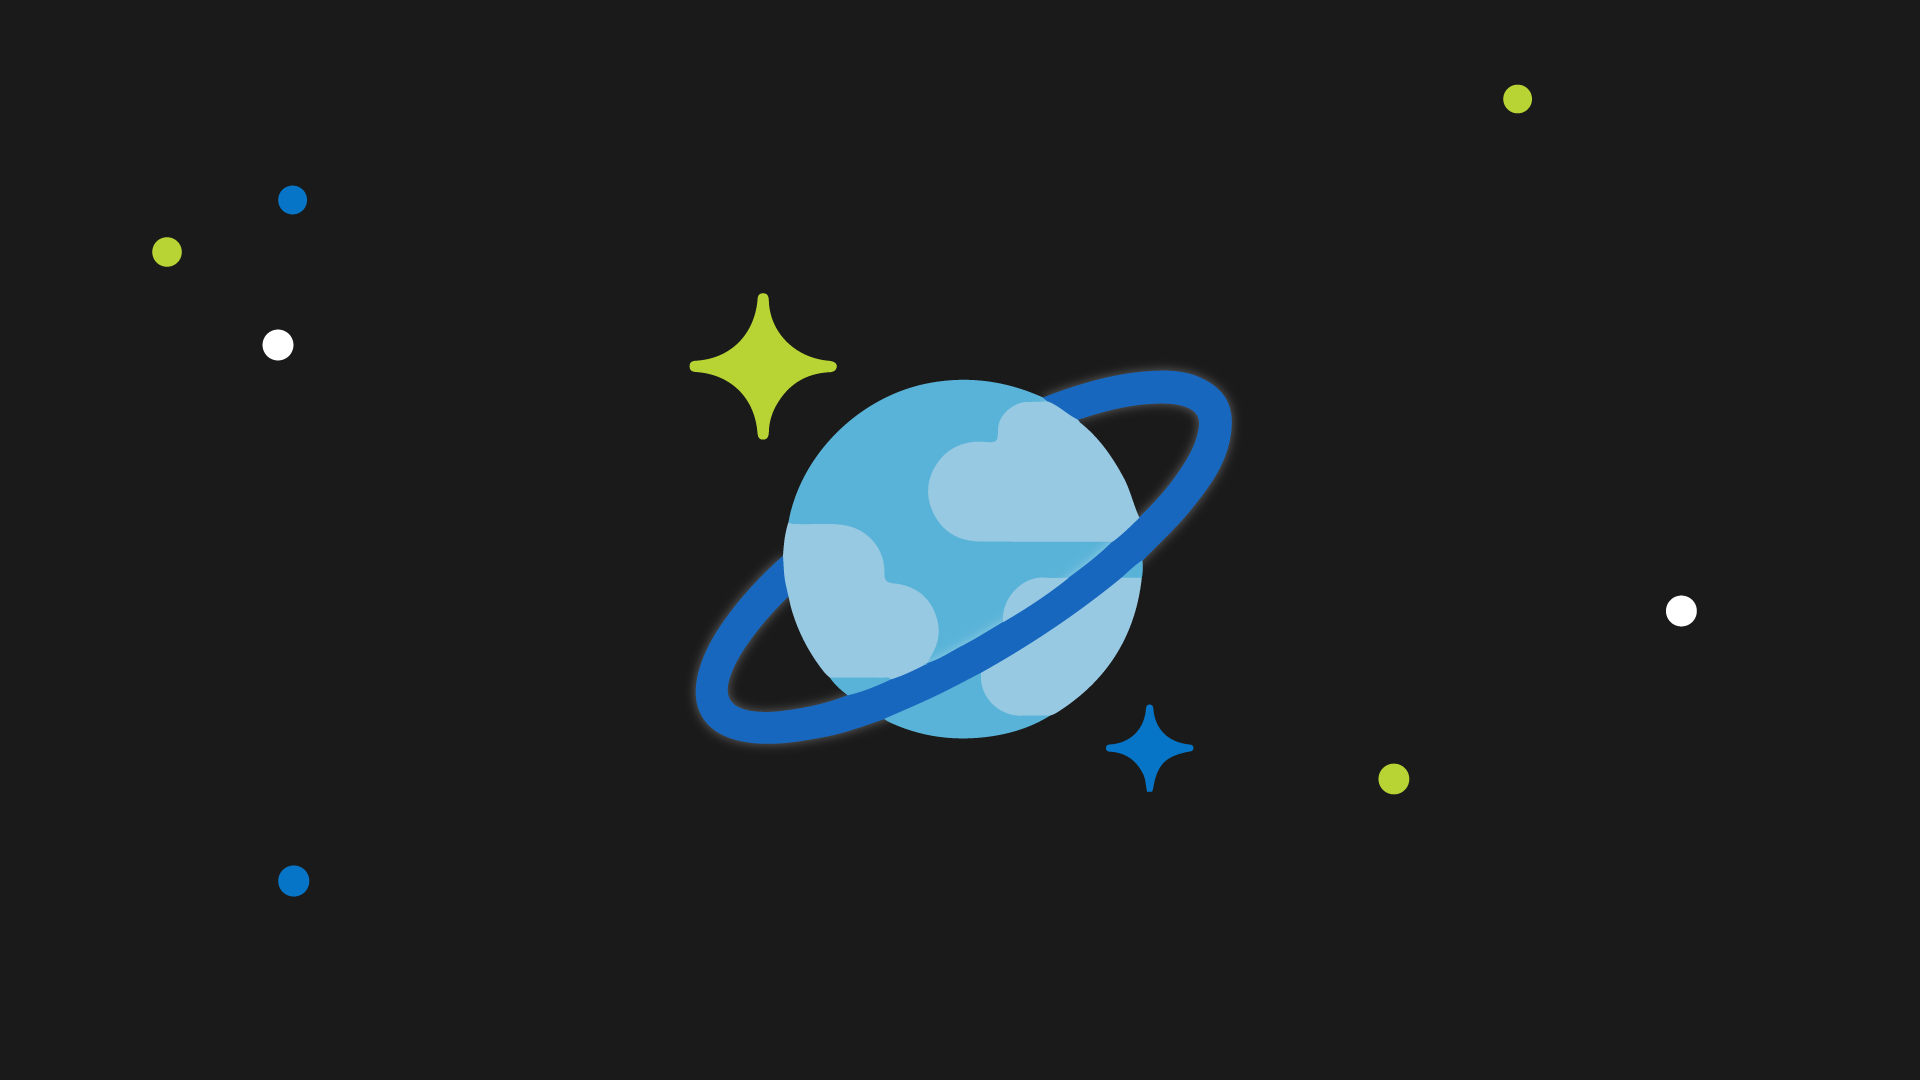 The CosmosDB planet logo in space